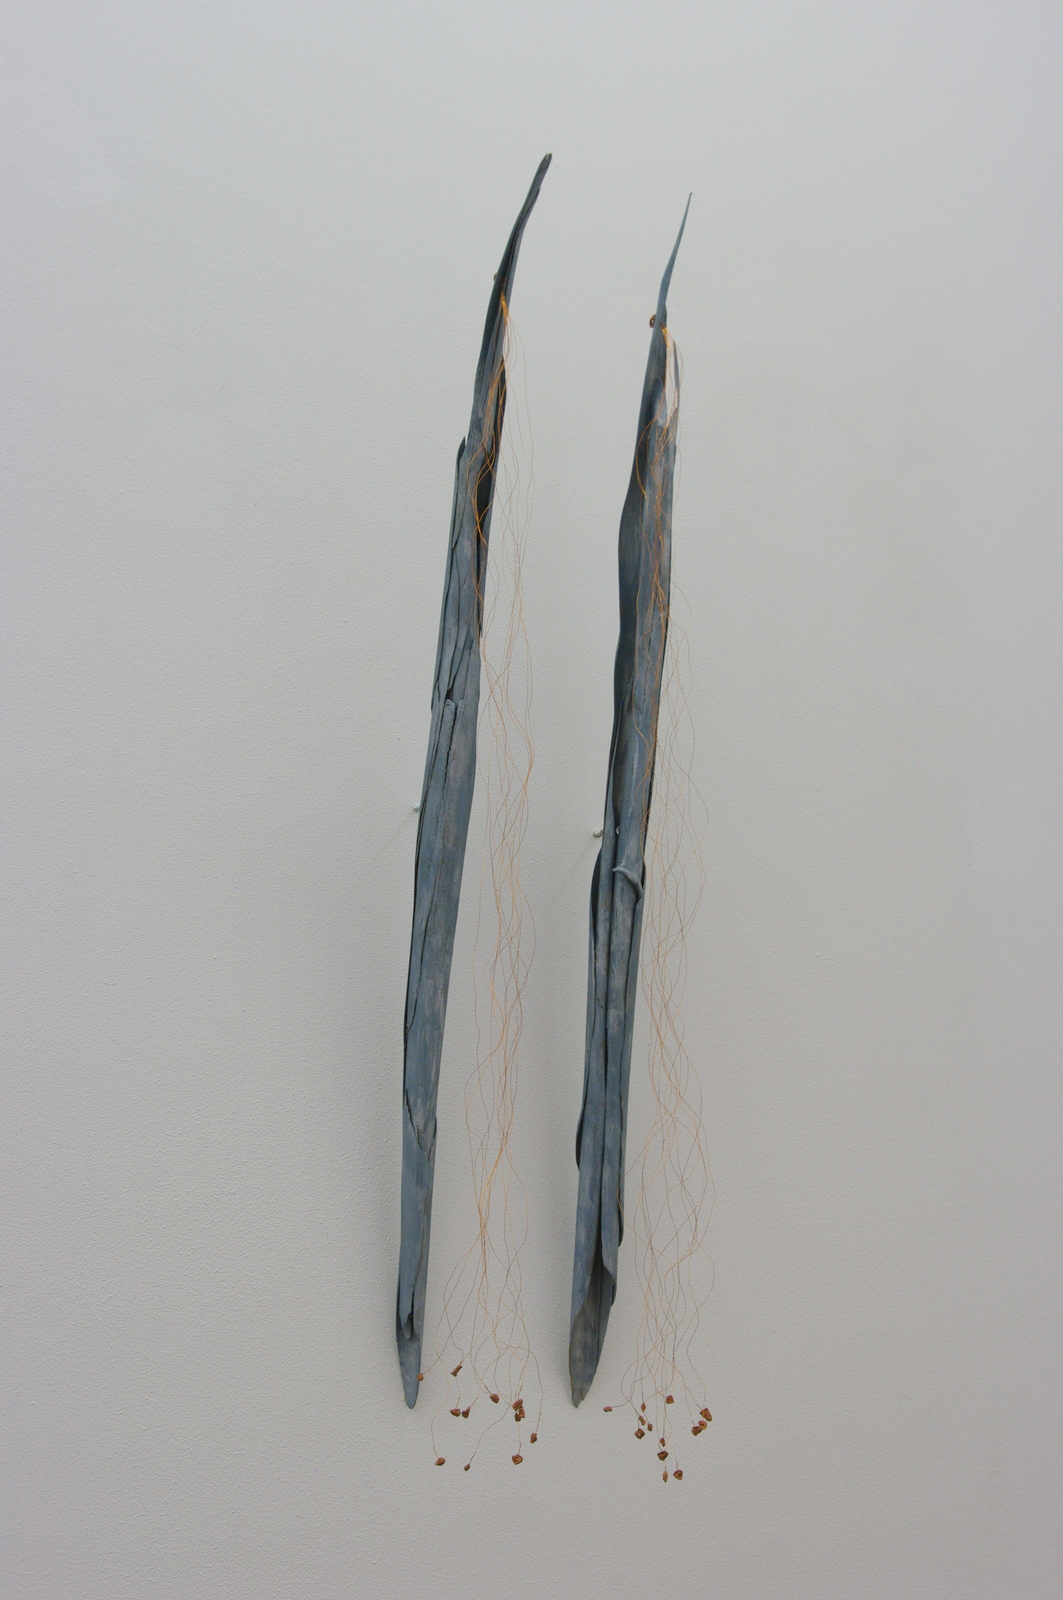 2006 sold<br>90 x 8 x 9 cm each<br>barkof eucalyptus, copper wire, cork